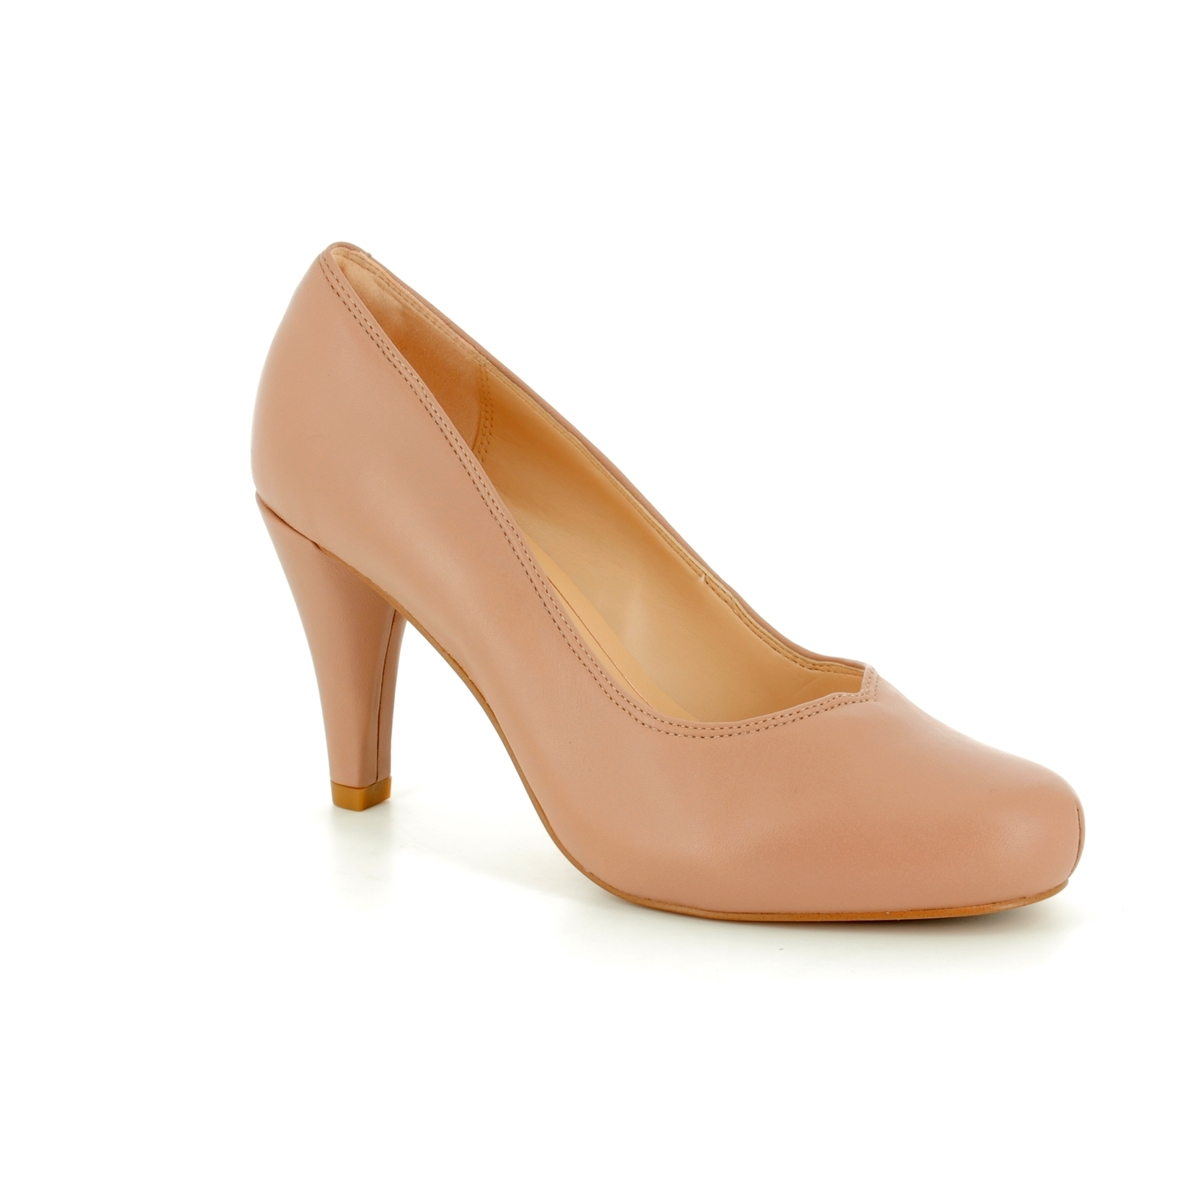 new release 60% clearance great deals on fashion 3226/64d Dalia Rose at Begg Shoes & Bags